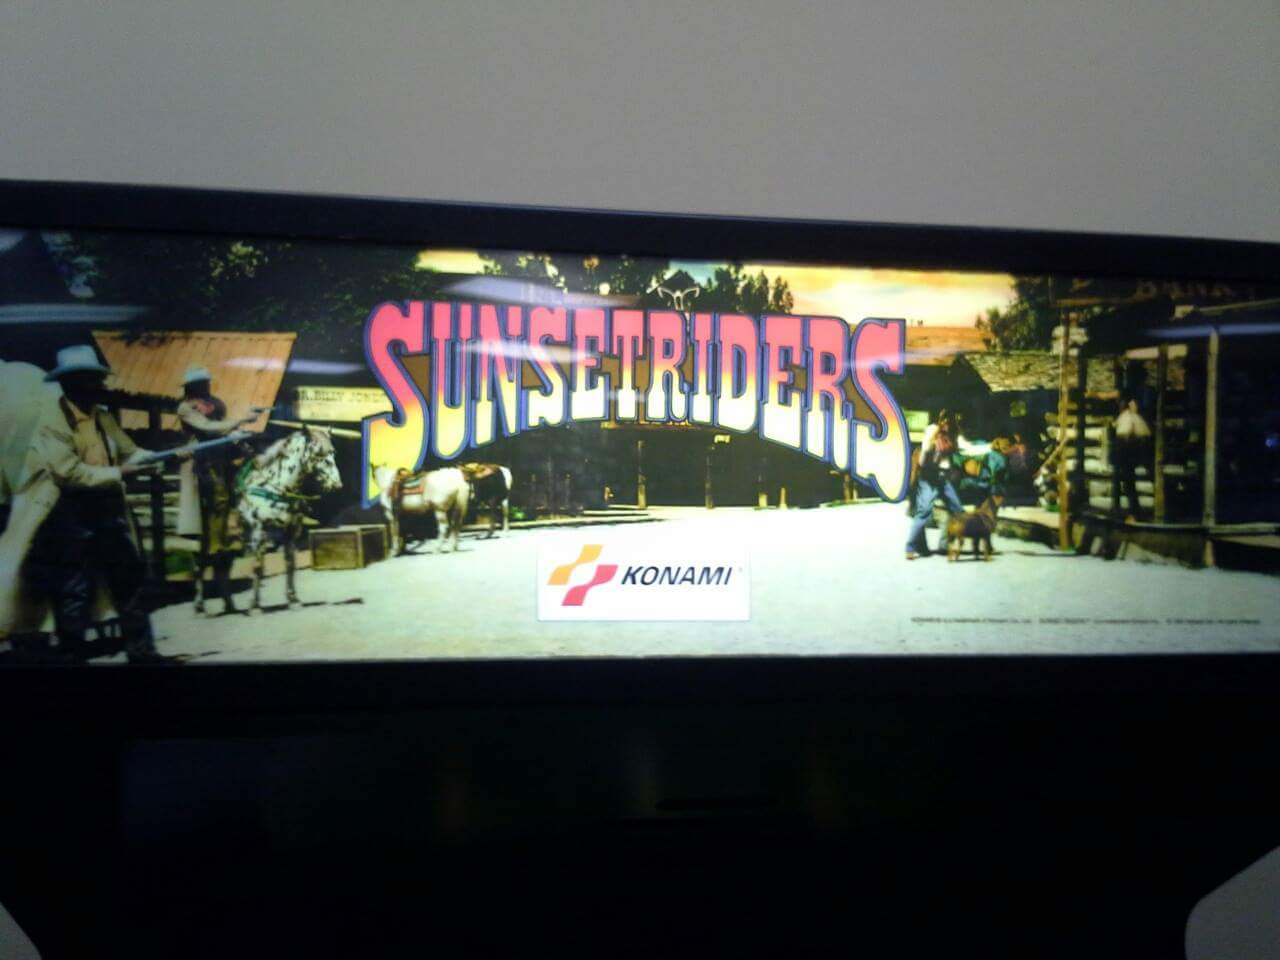 Sunset Riders 20,090 points